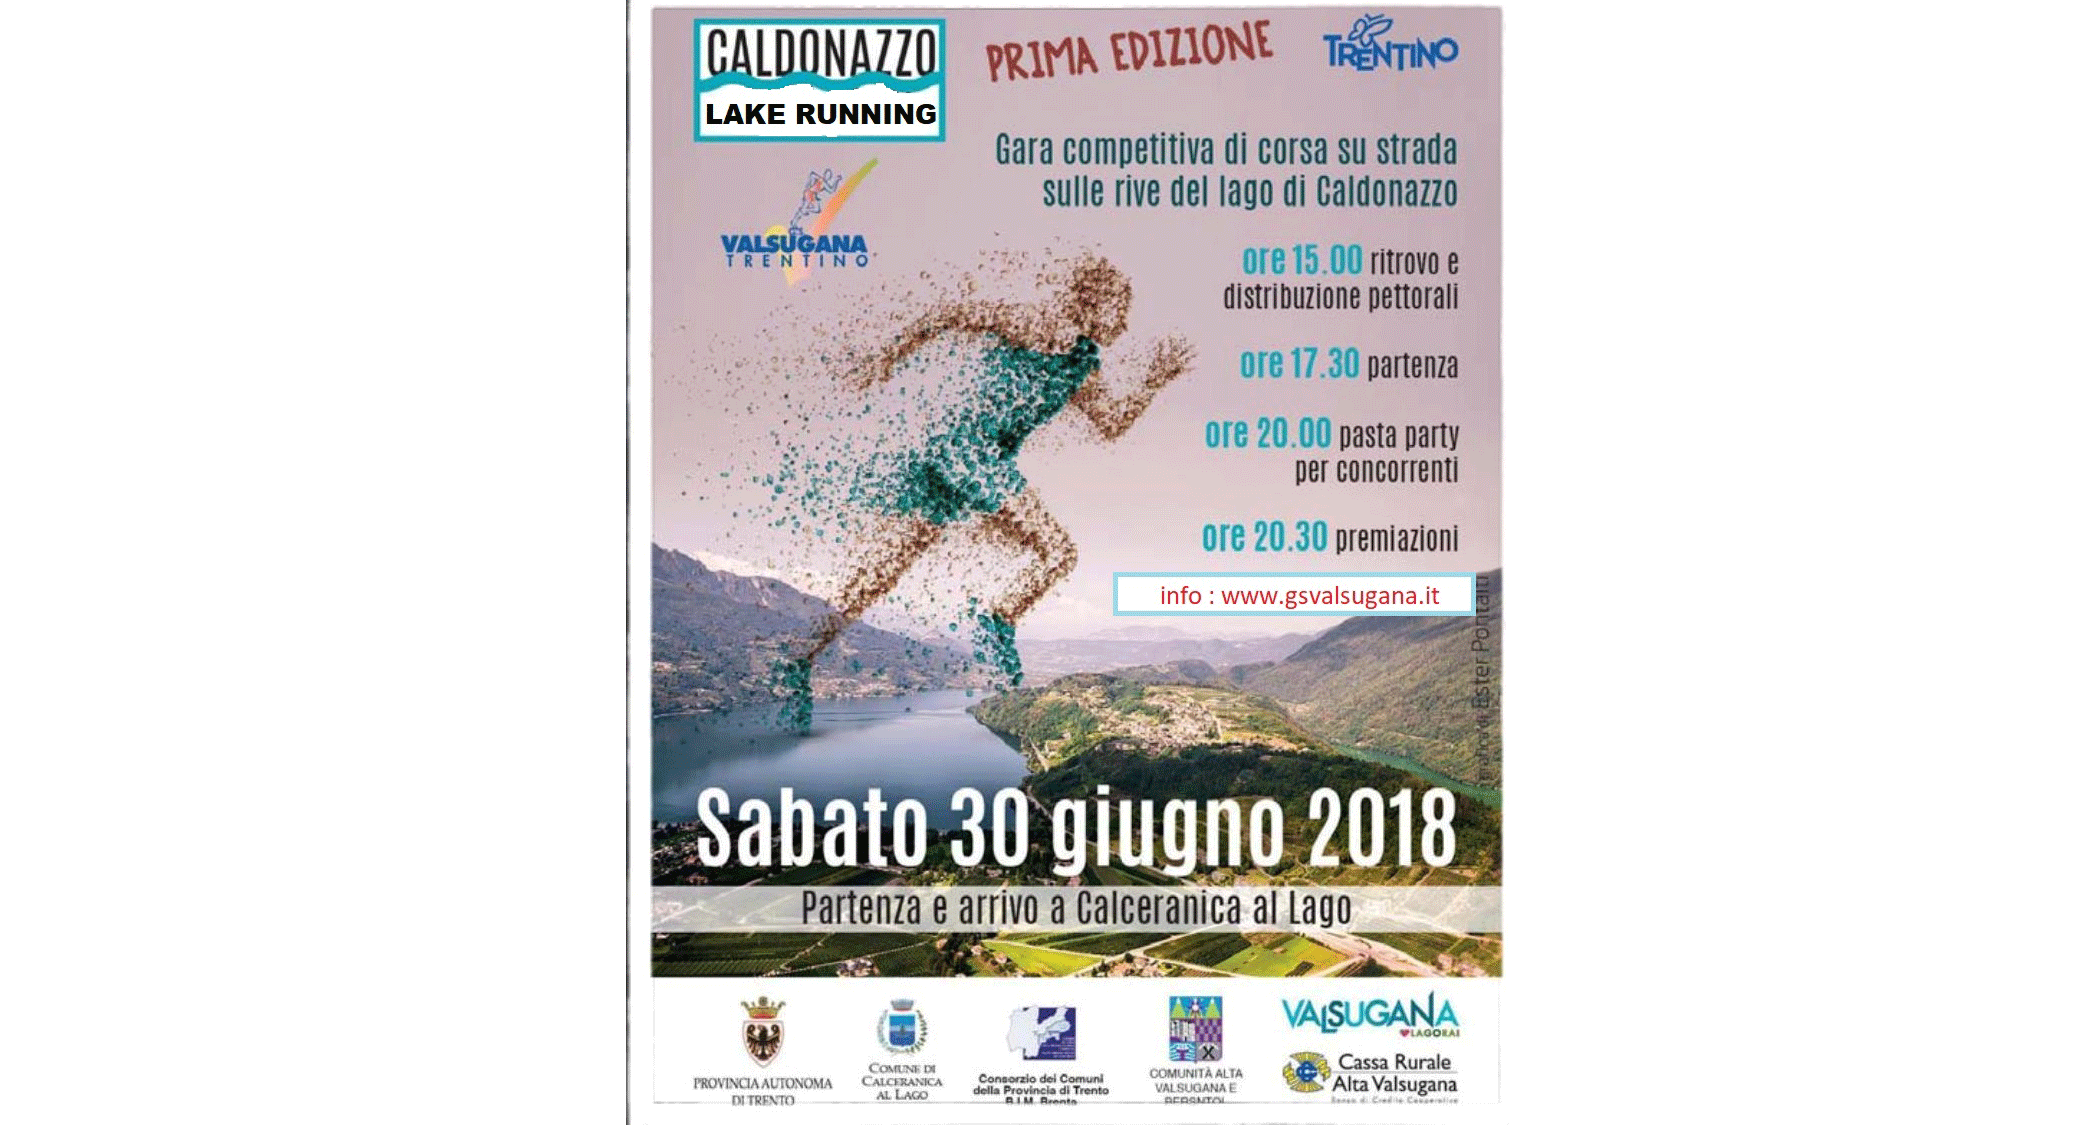 Caldonazzo Lake Running